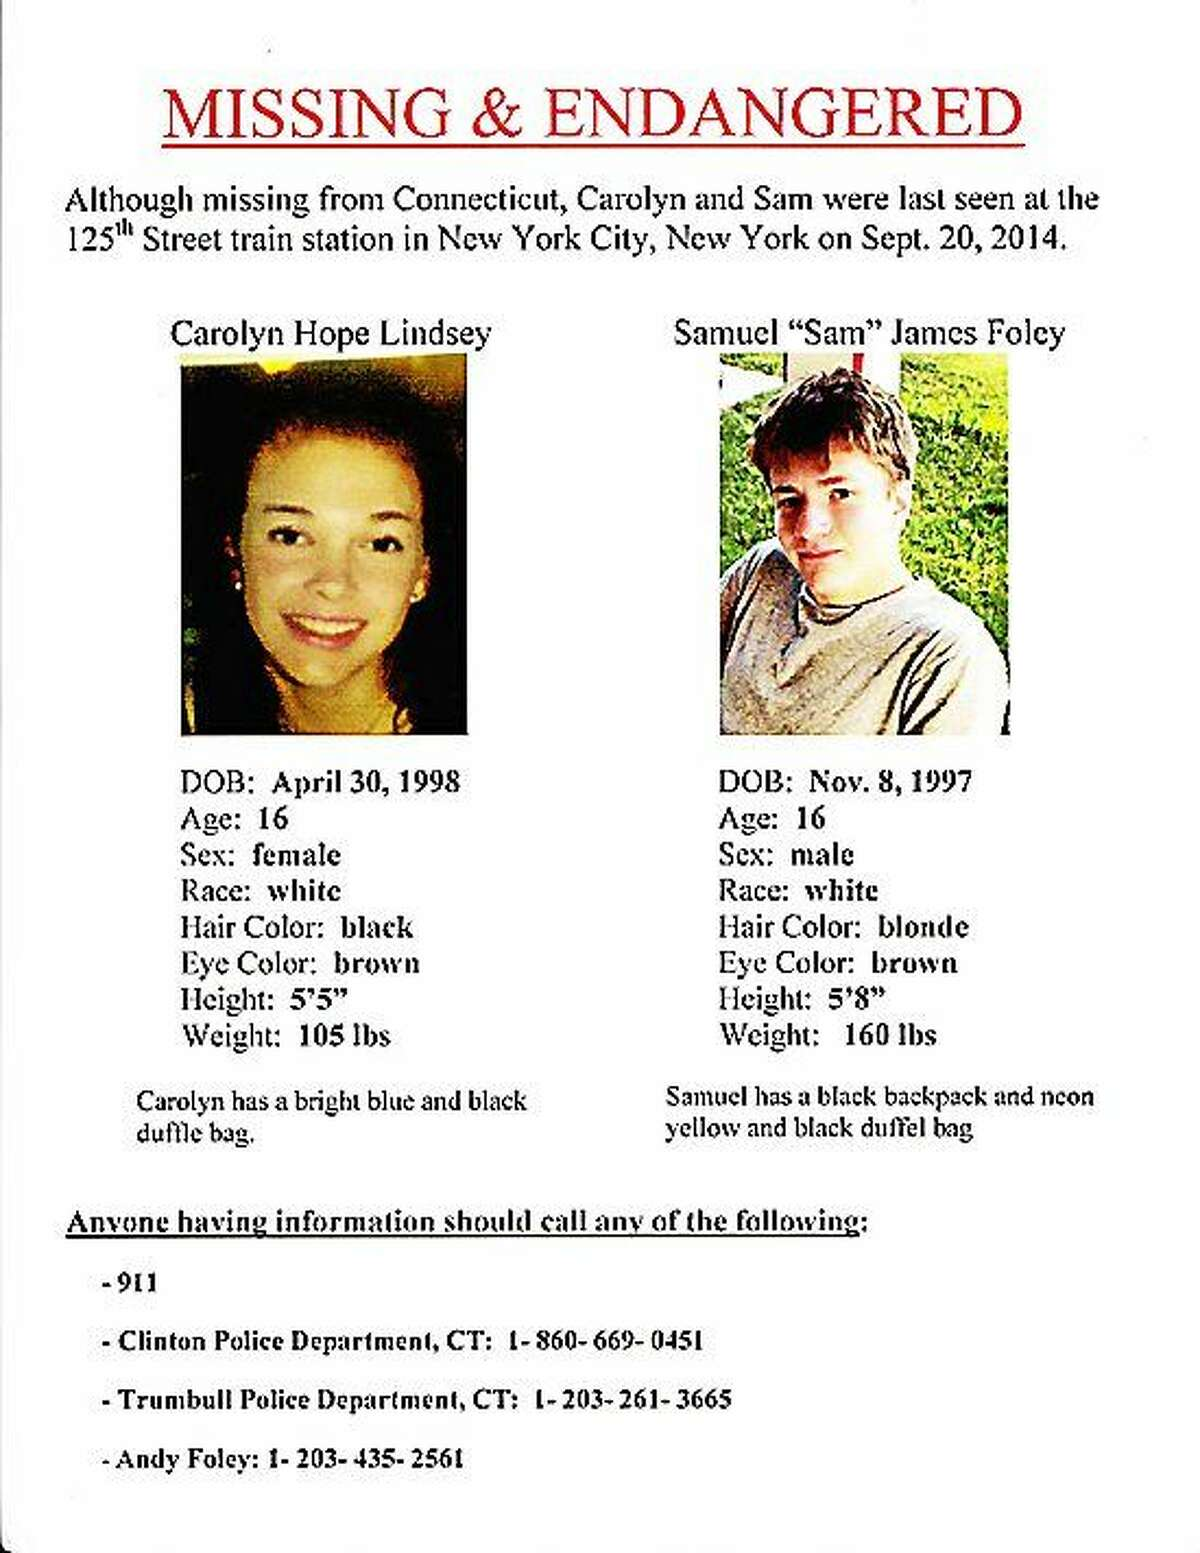 The poster that the families circulated after both teens, Carolyn Hope Lindsey and Sam James Foley ran away.